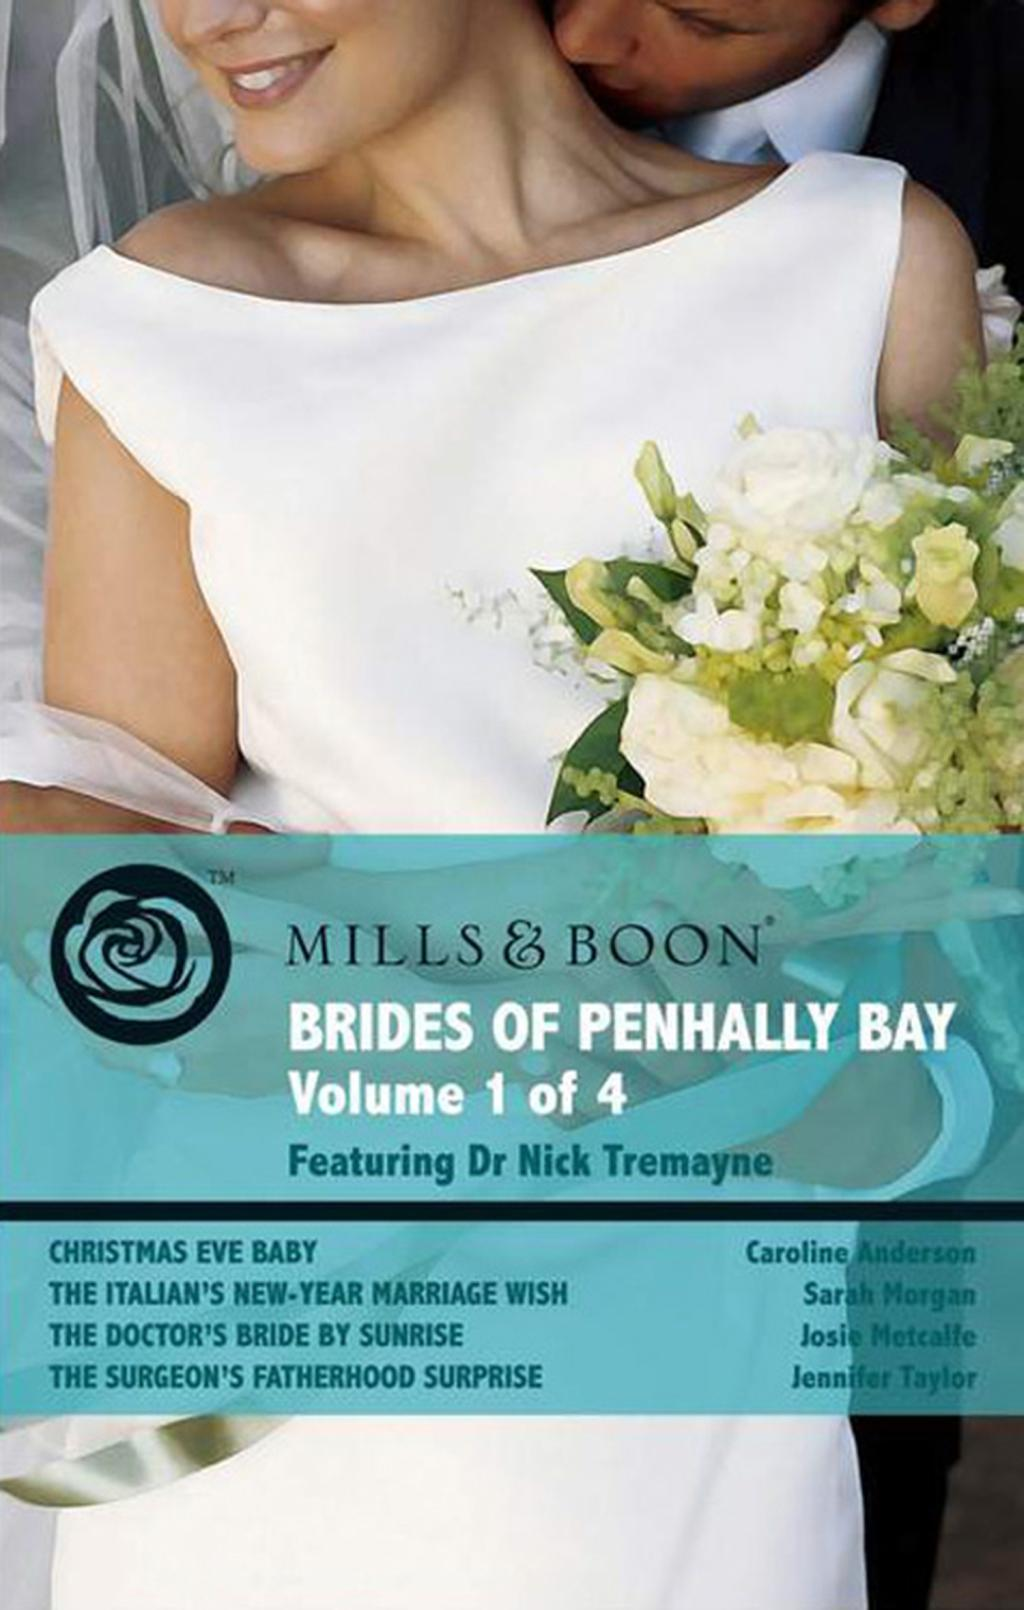 Brides of Penhally Bay - Vol 1: Christmas Eve Baby / The Italian's New-Year Marriage Wish / The Doctor's Bride By Sunrise / The Surgeon's Fatherhood Surprise (Mills & Boon Romance)